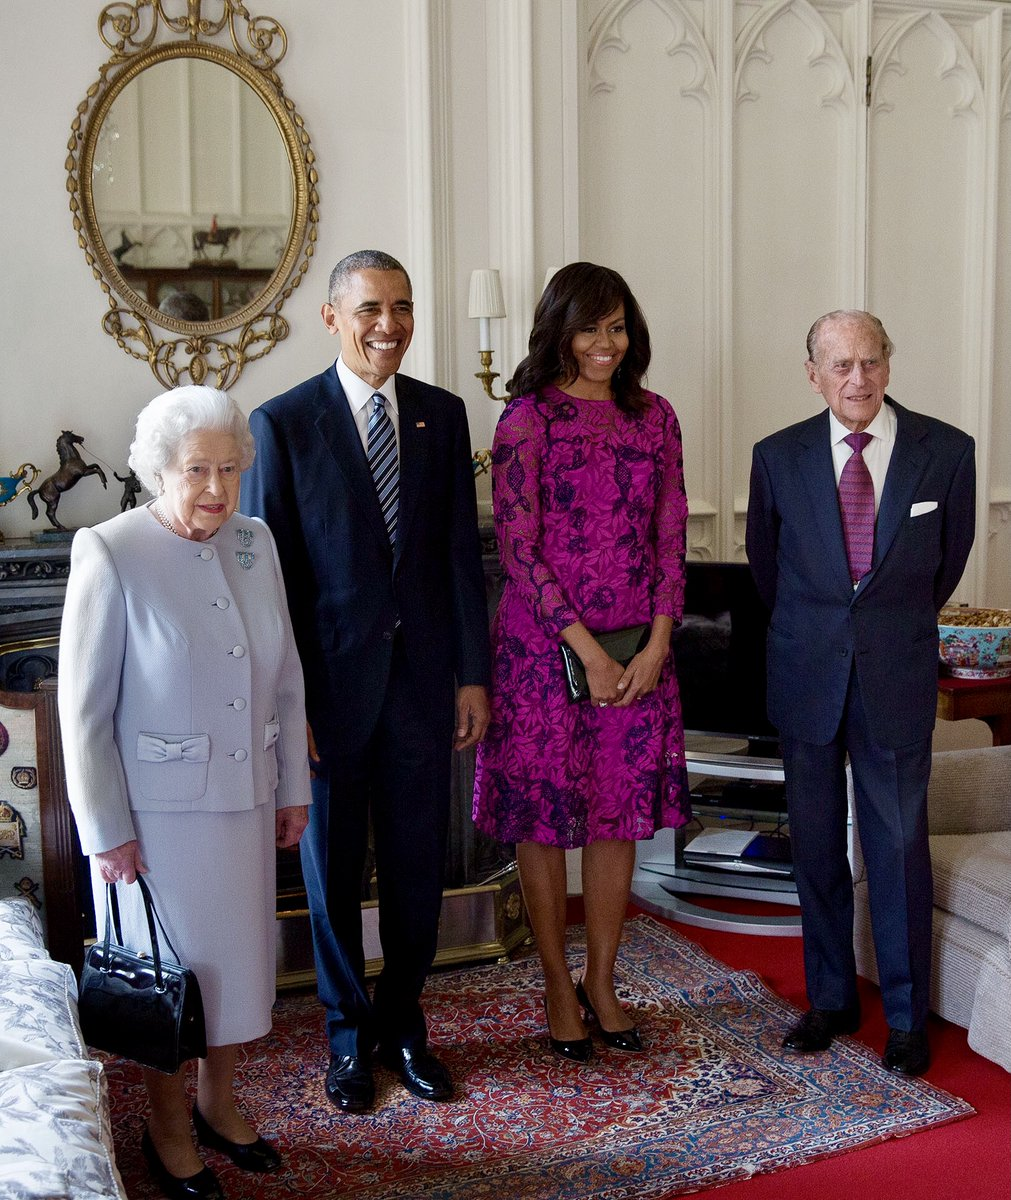 @BarackObama's photo on Royal Family